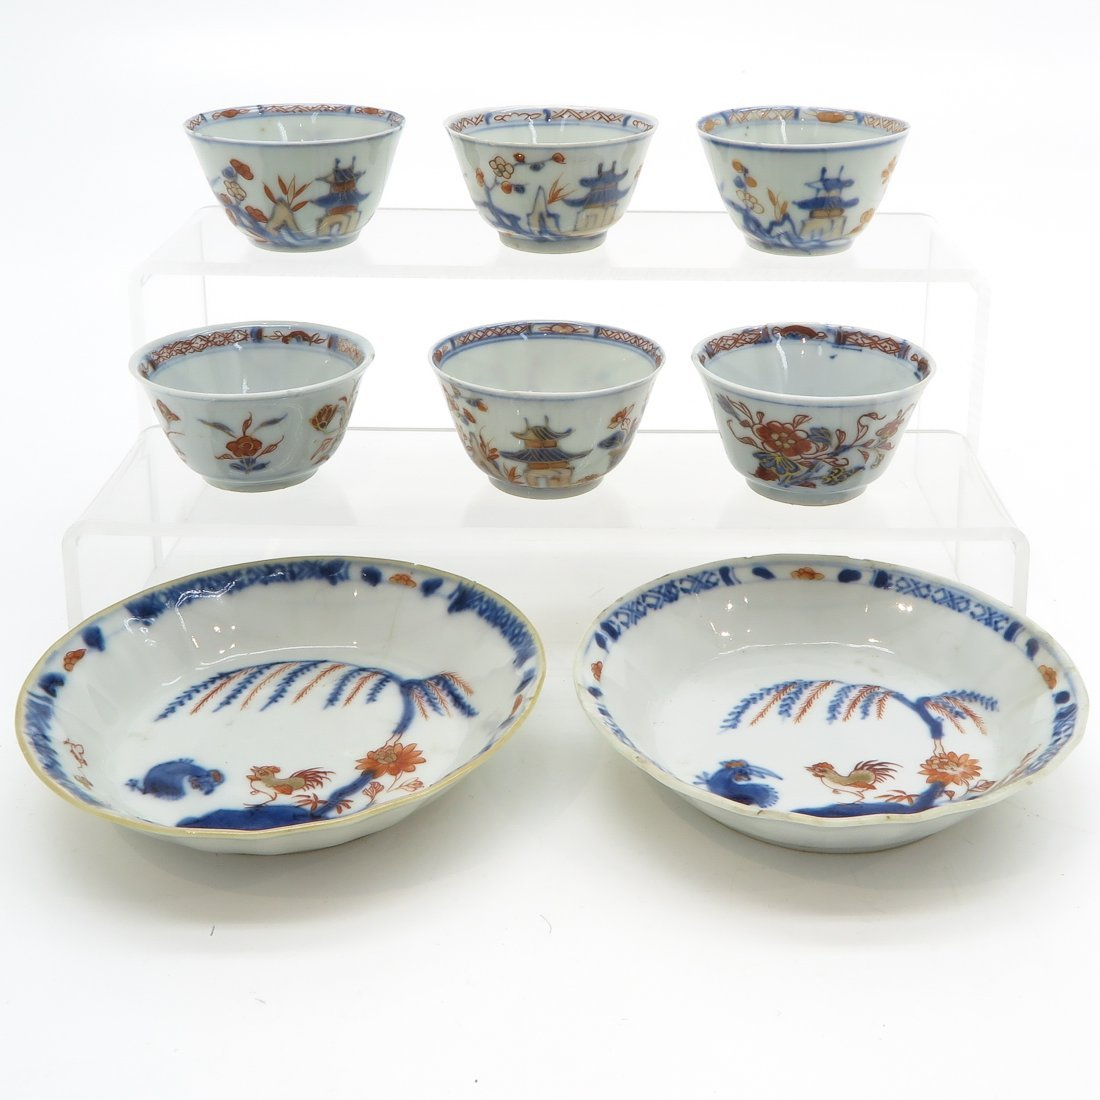 Lot of 18th Century China Porcelain Cups and Saucers